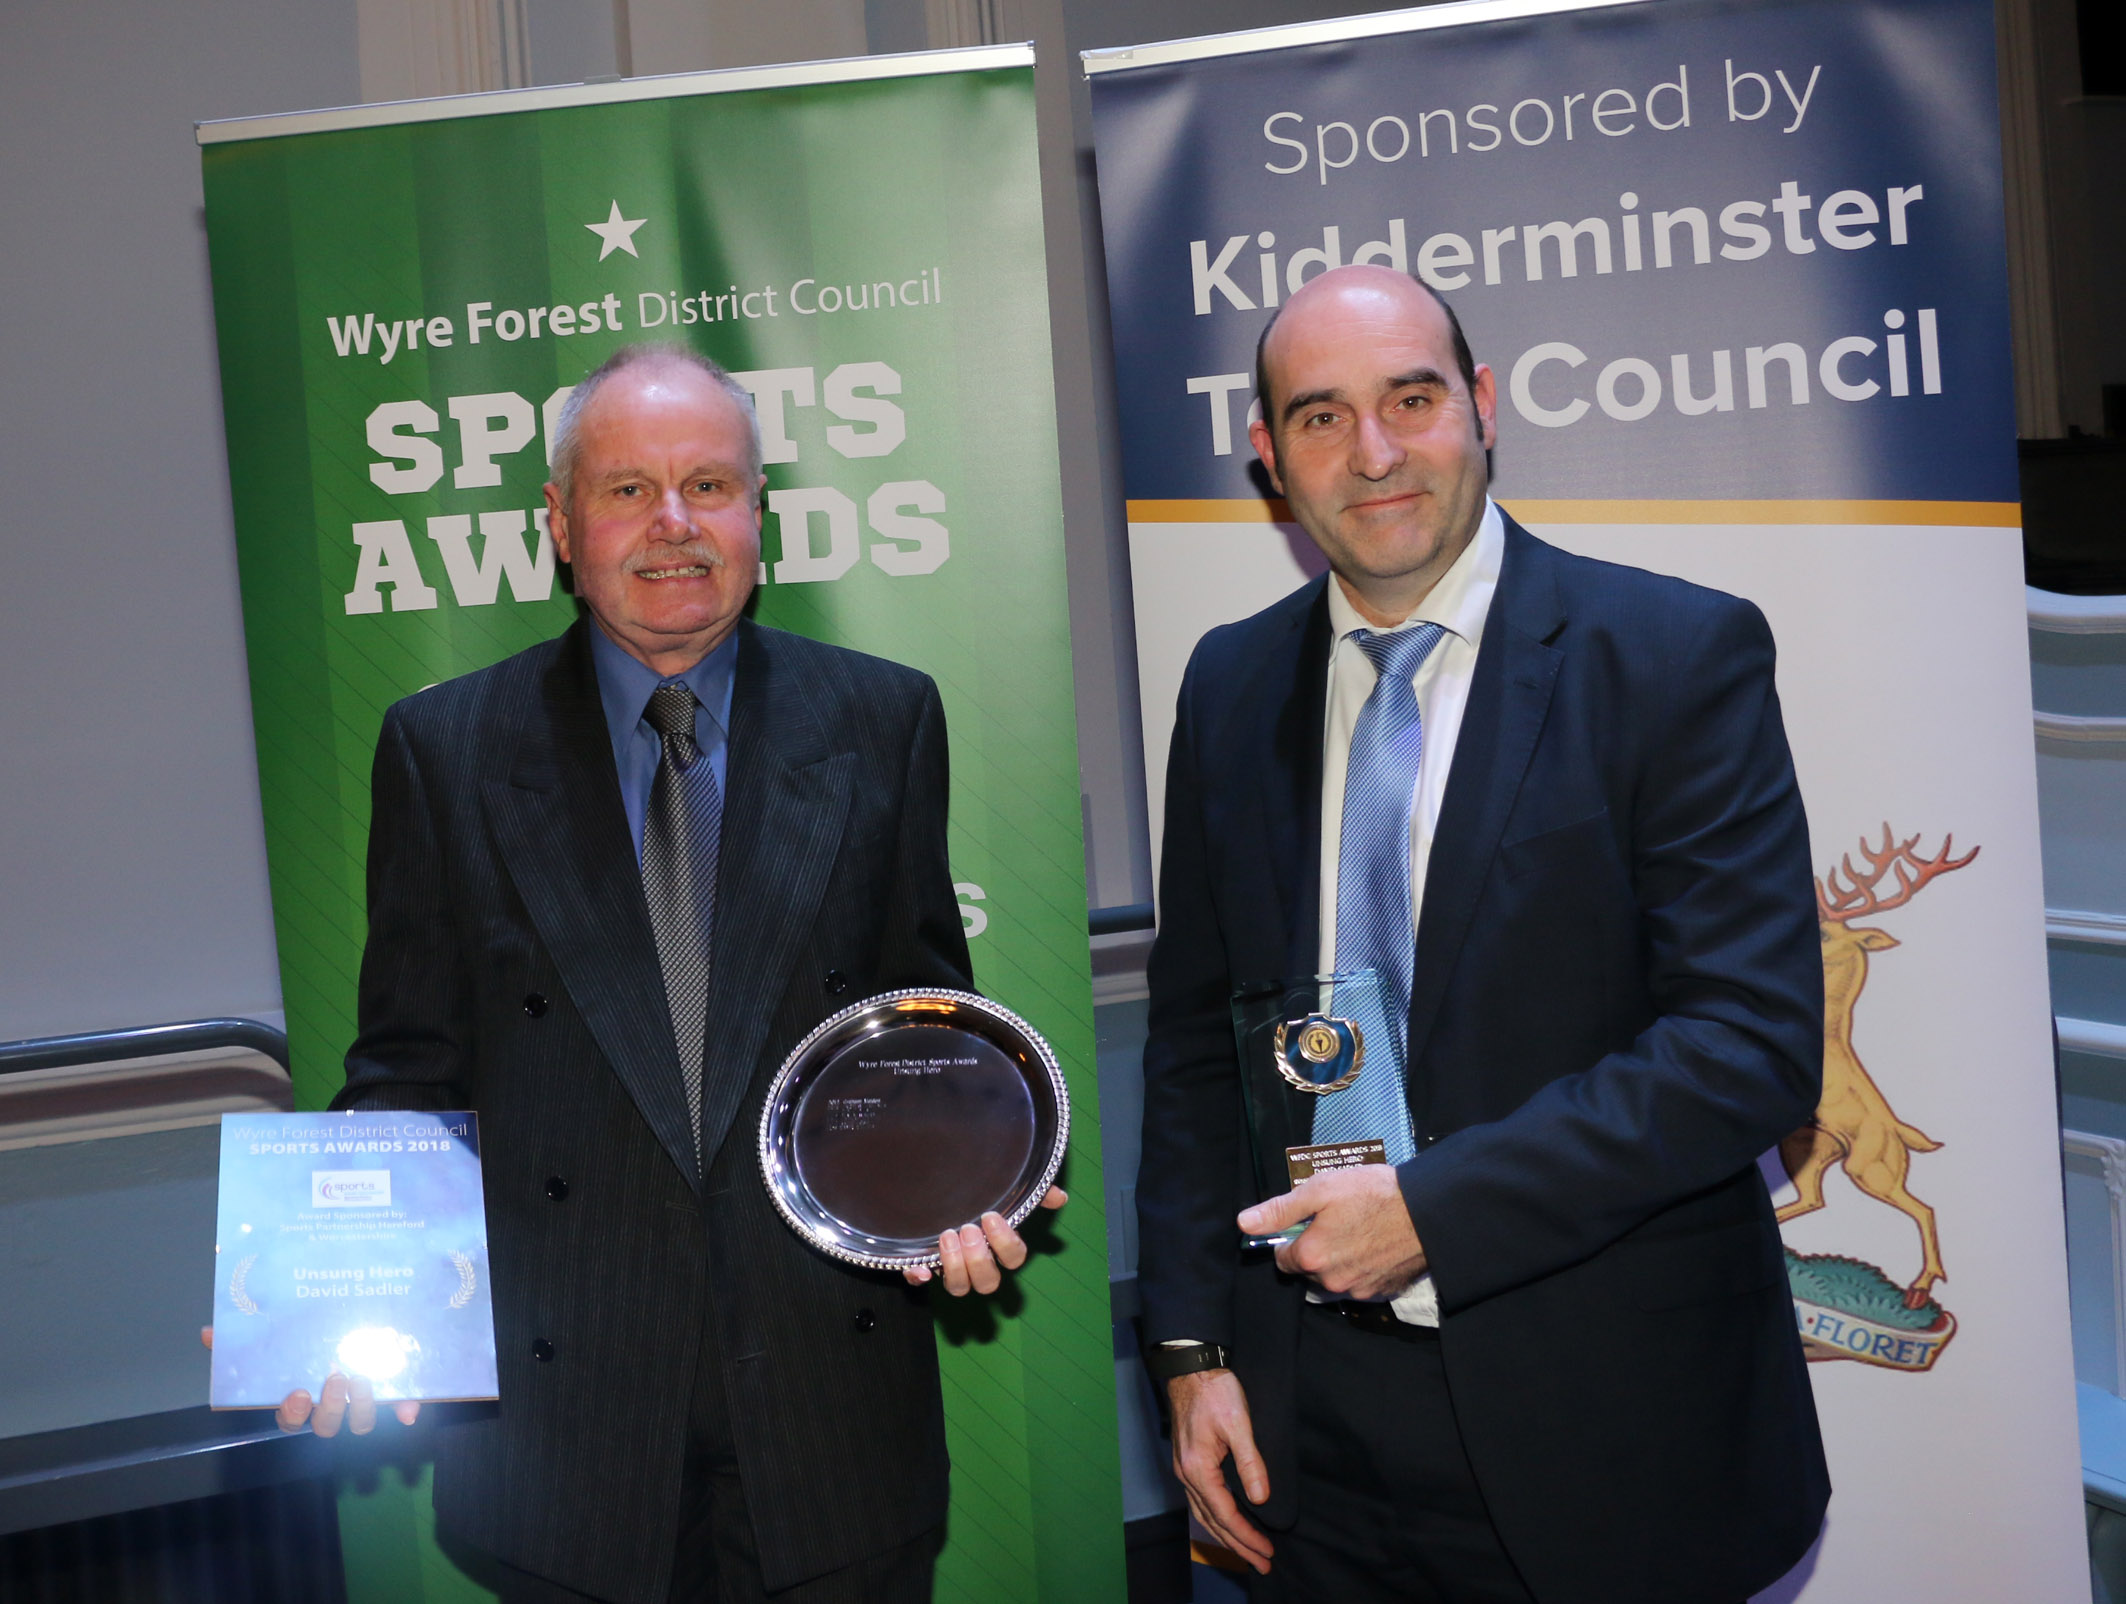 KTC Unsung Hero – Wyre forest Sports awards